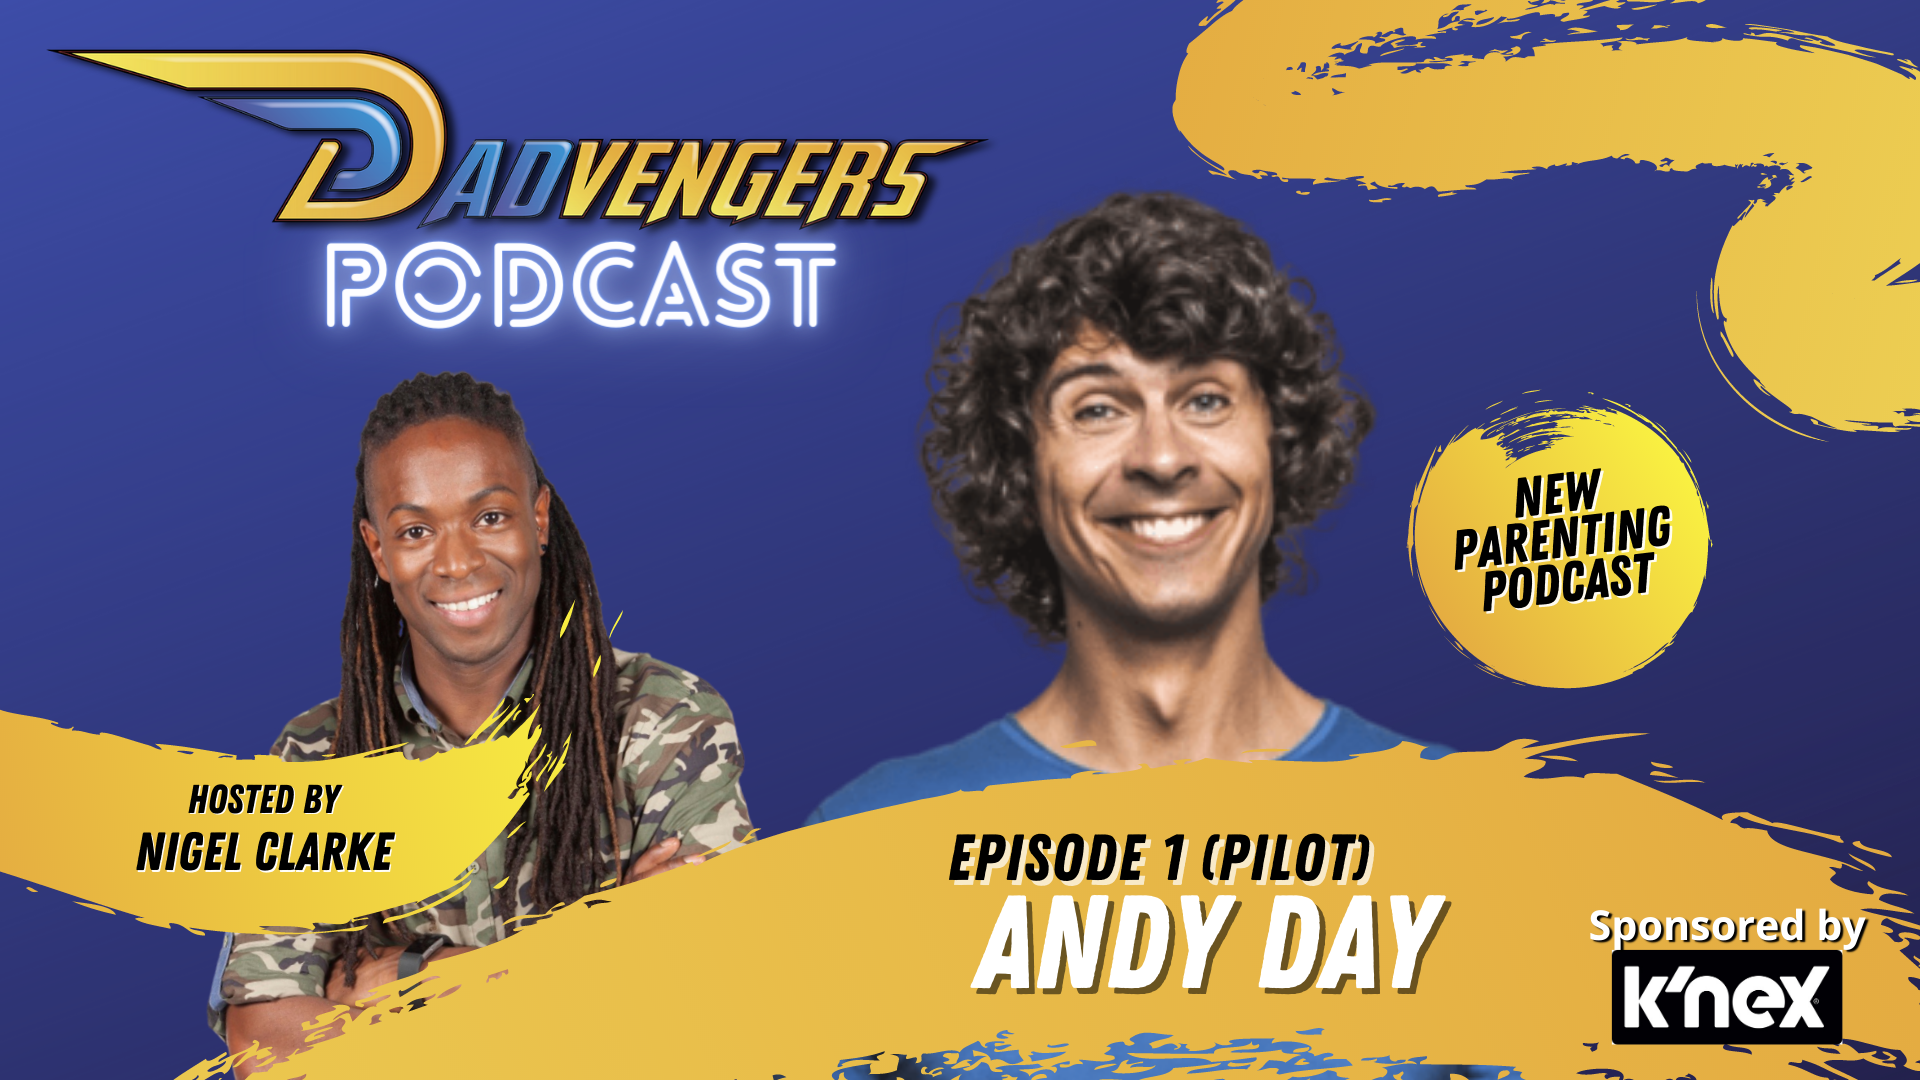 Dadvengers Podcast Episode 1 - Andy Day